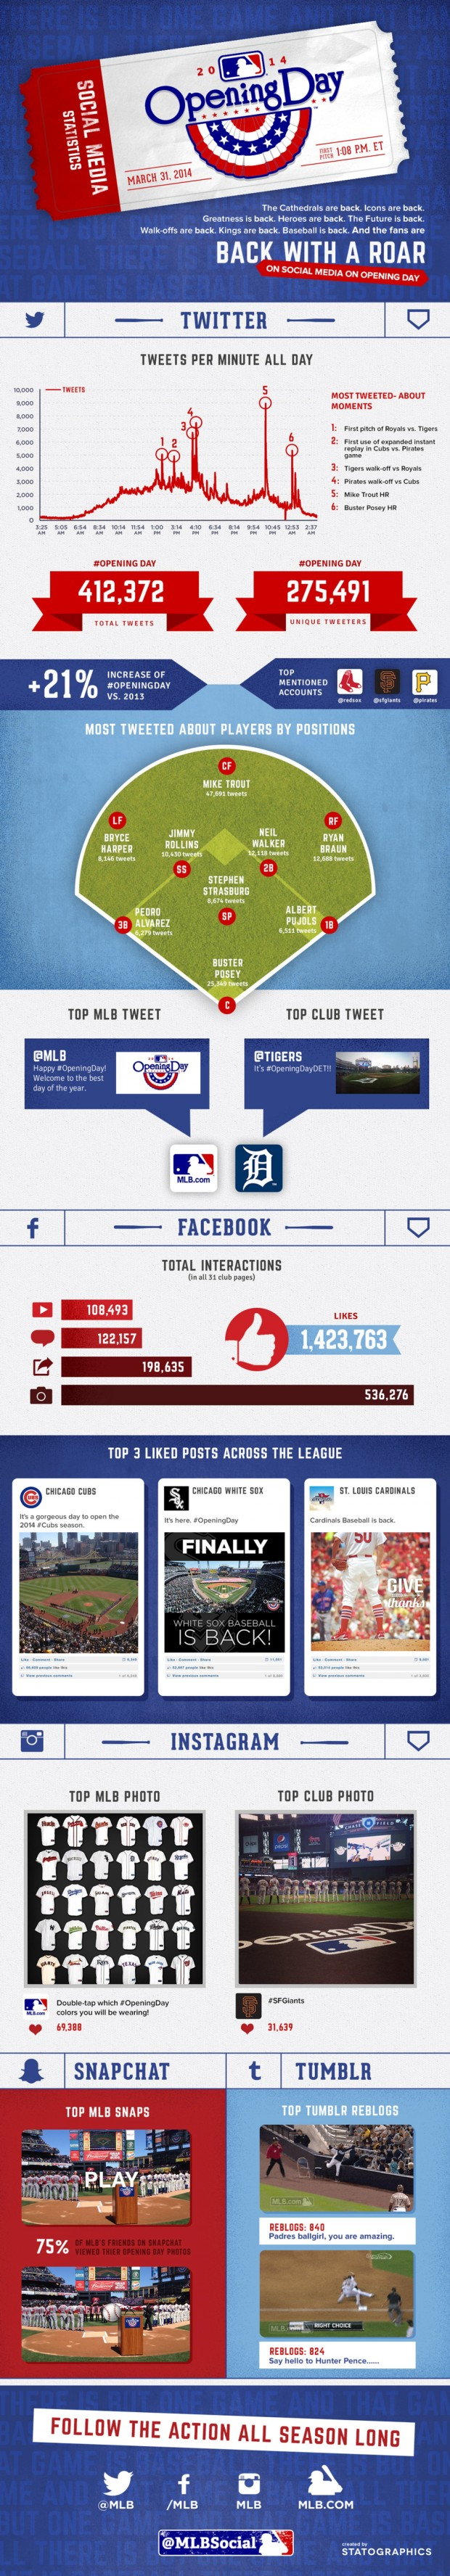 Social Media Statistics from MLB's 2014 Opening Day [INFOGRAPHIC]